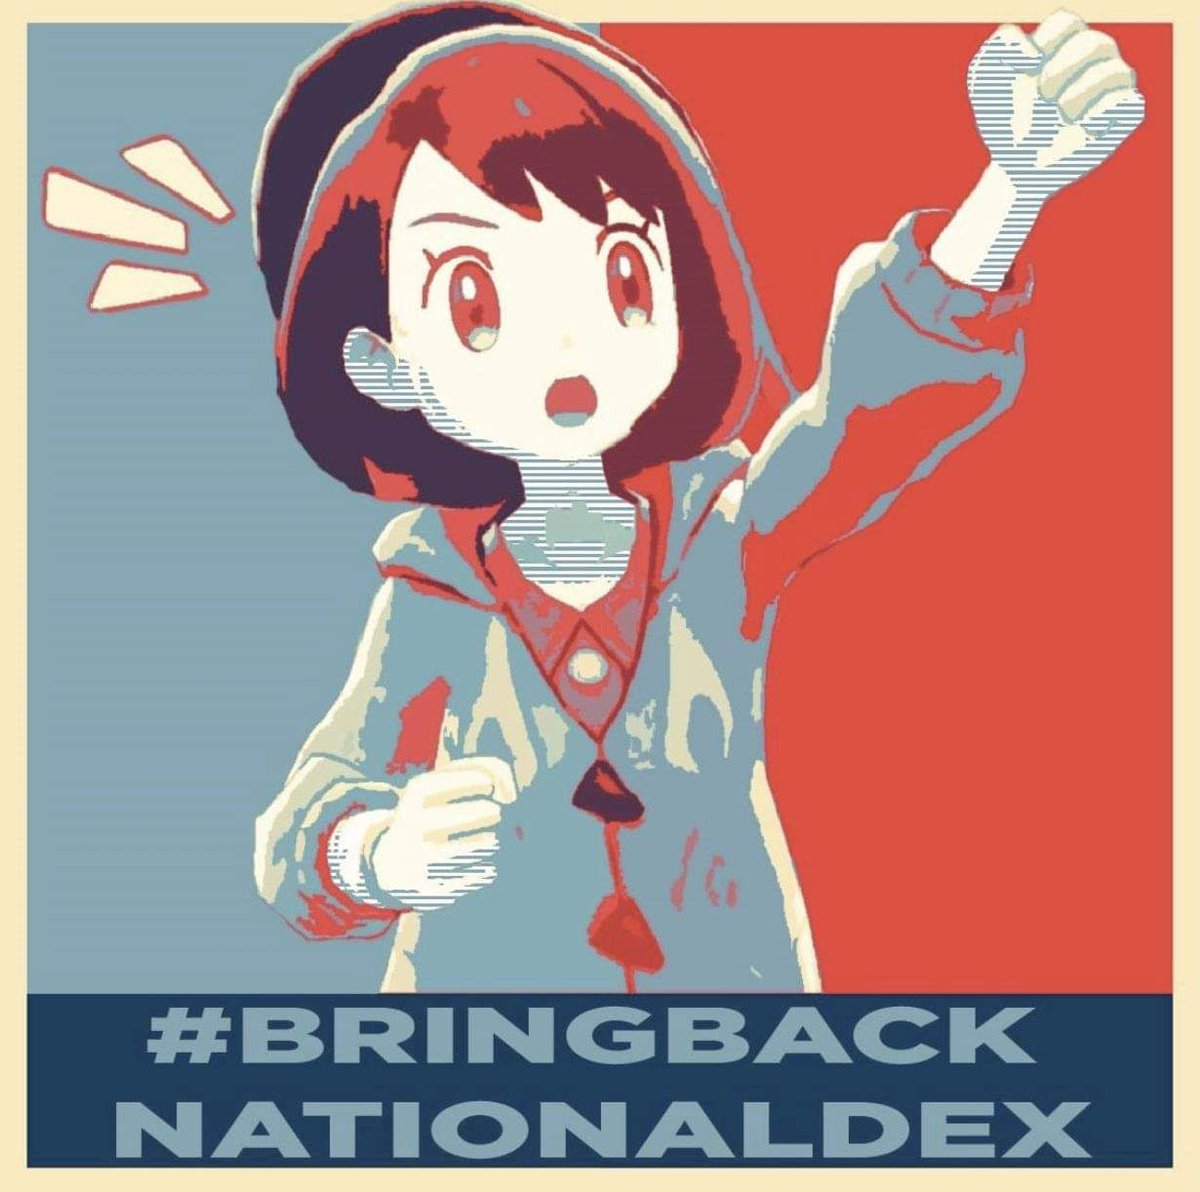 People treating GameFreak like it's some small indie dev studio driving me up the wall. Theres literally no other media franchise that makes more money than Pokemon. They have 0 excuse to settle in to mediocrity, and they sure as hell have money to fix SwSh #BringBackNationalDex <br>http://pic.twitter.com/uBRpcGCzJT